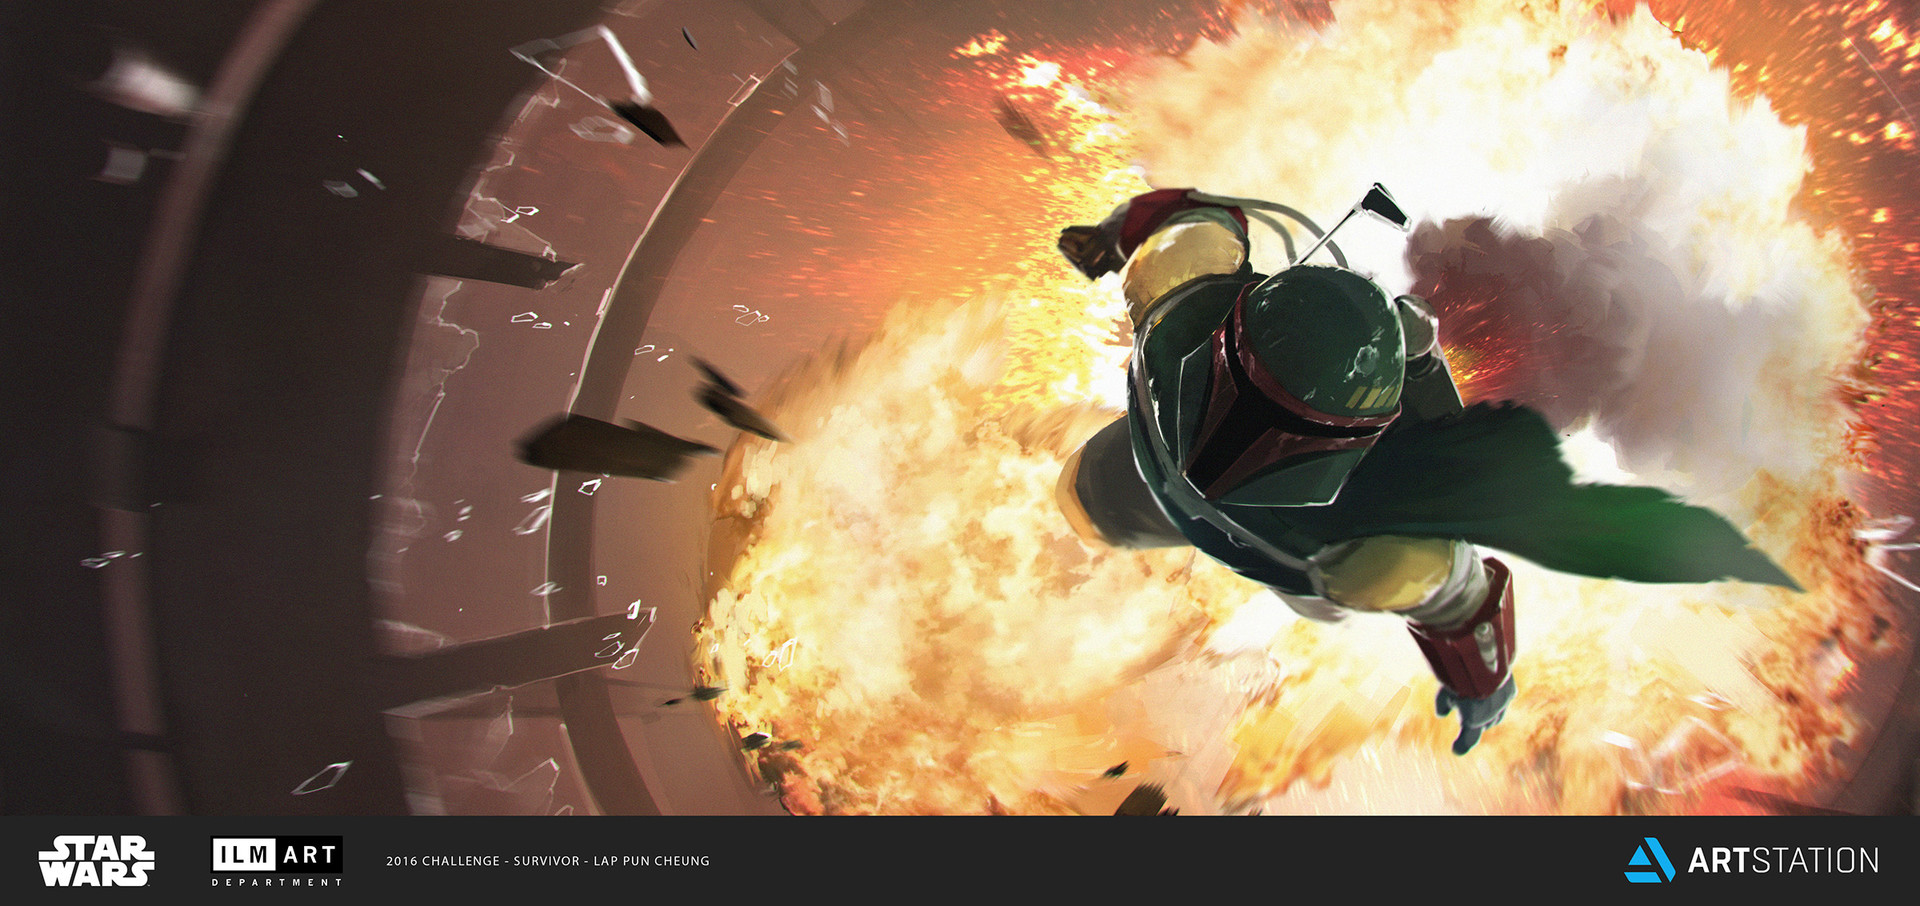 Lap pun cheung the moment keyframe a firey escape v1 watermarked online